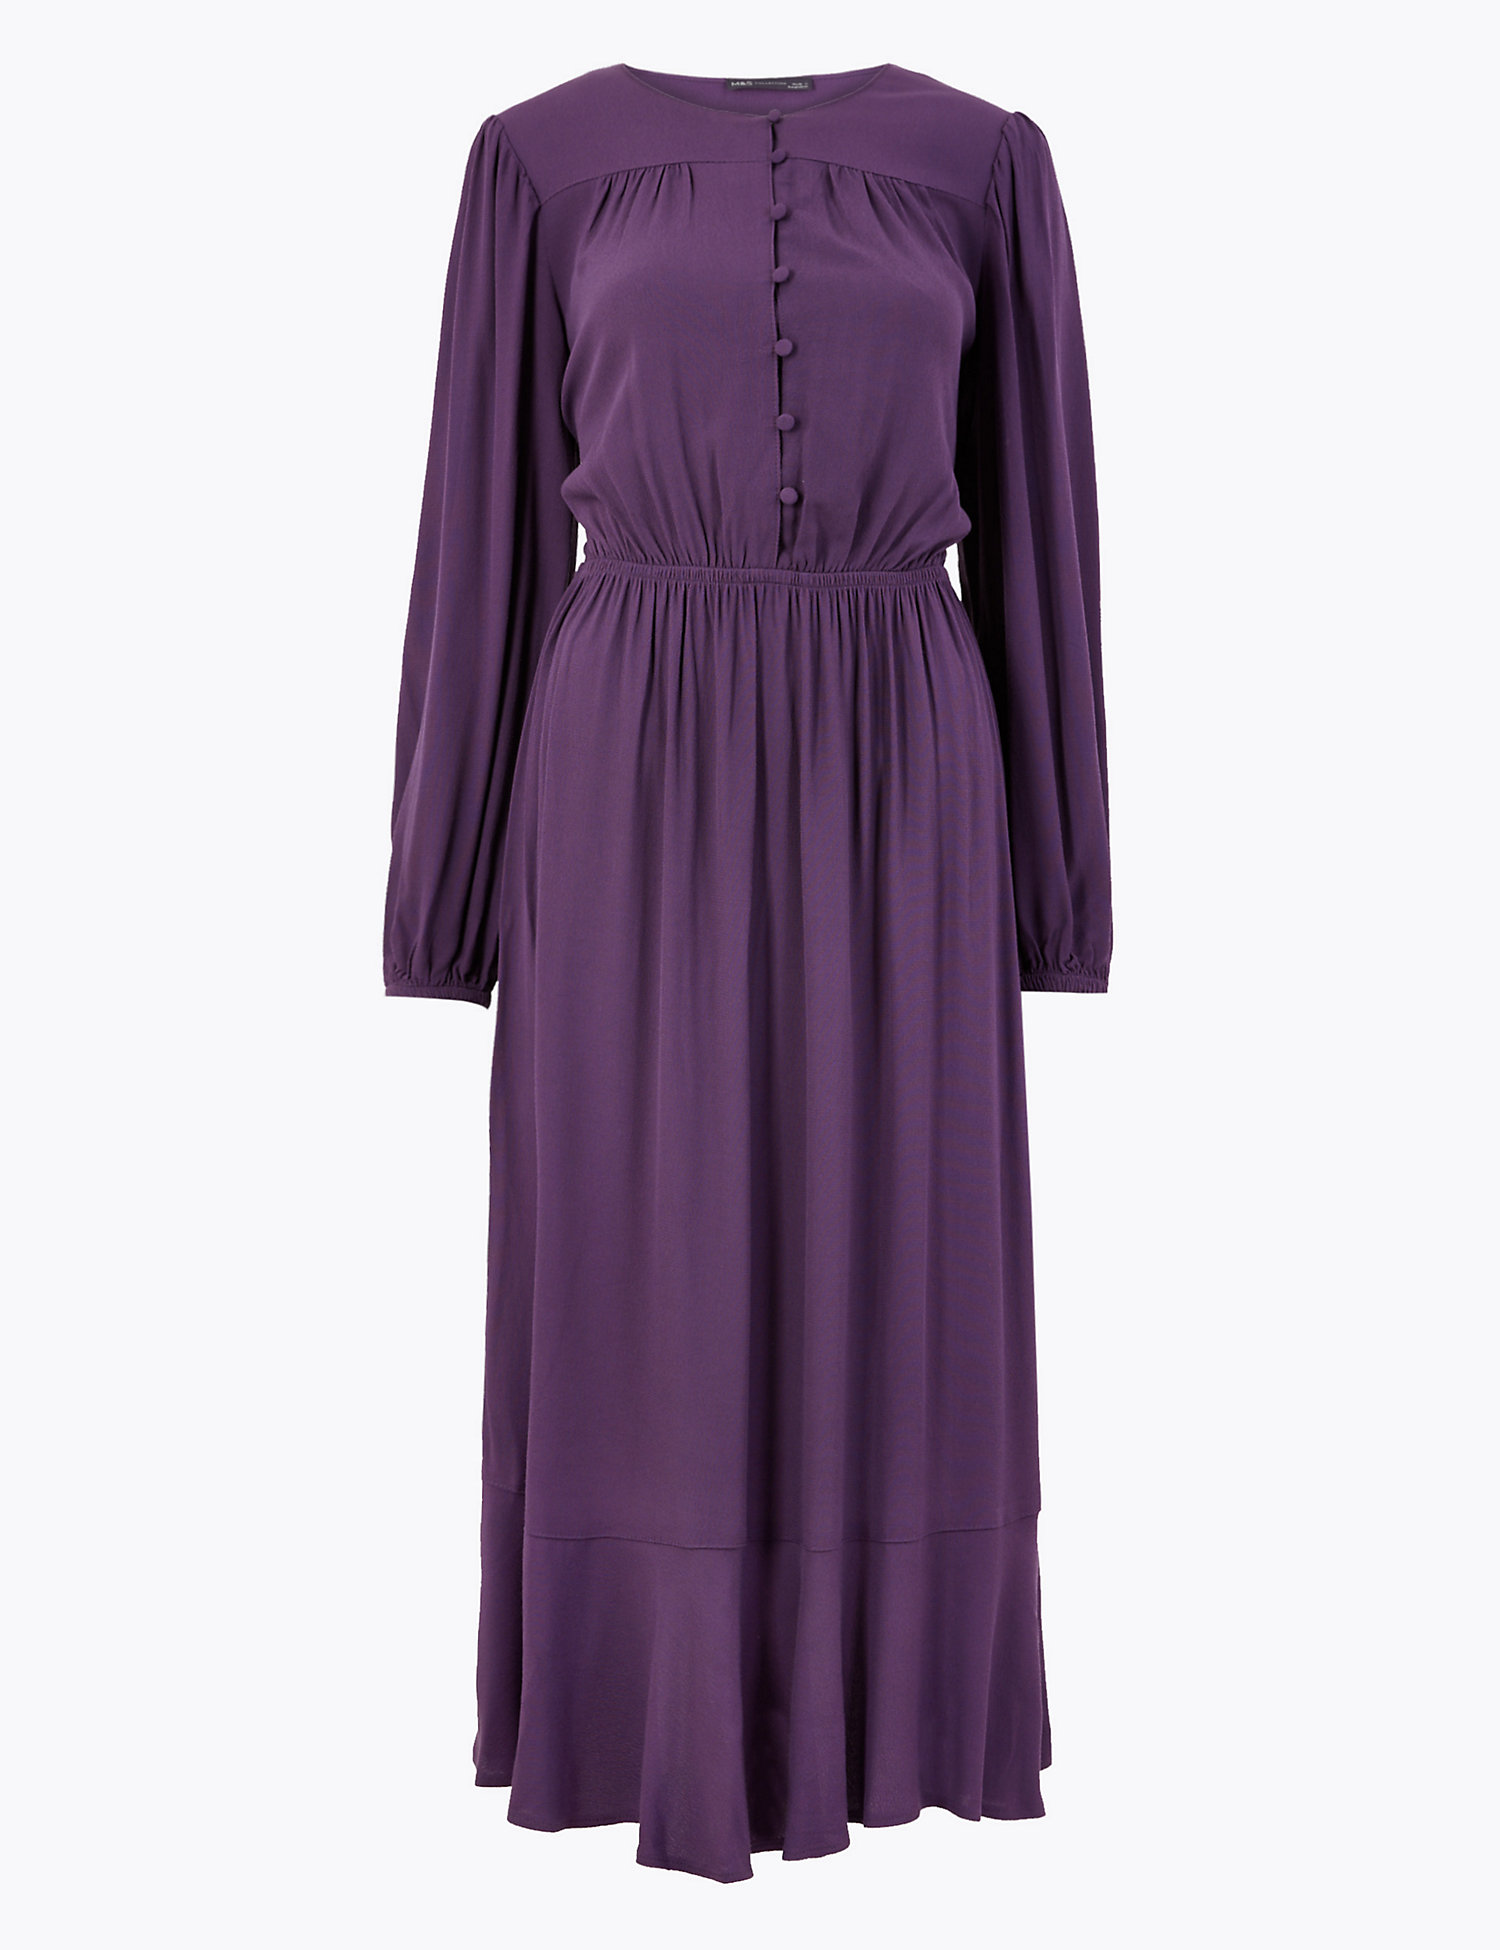 M&s button front midi